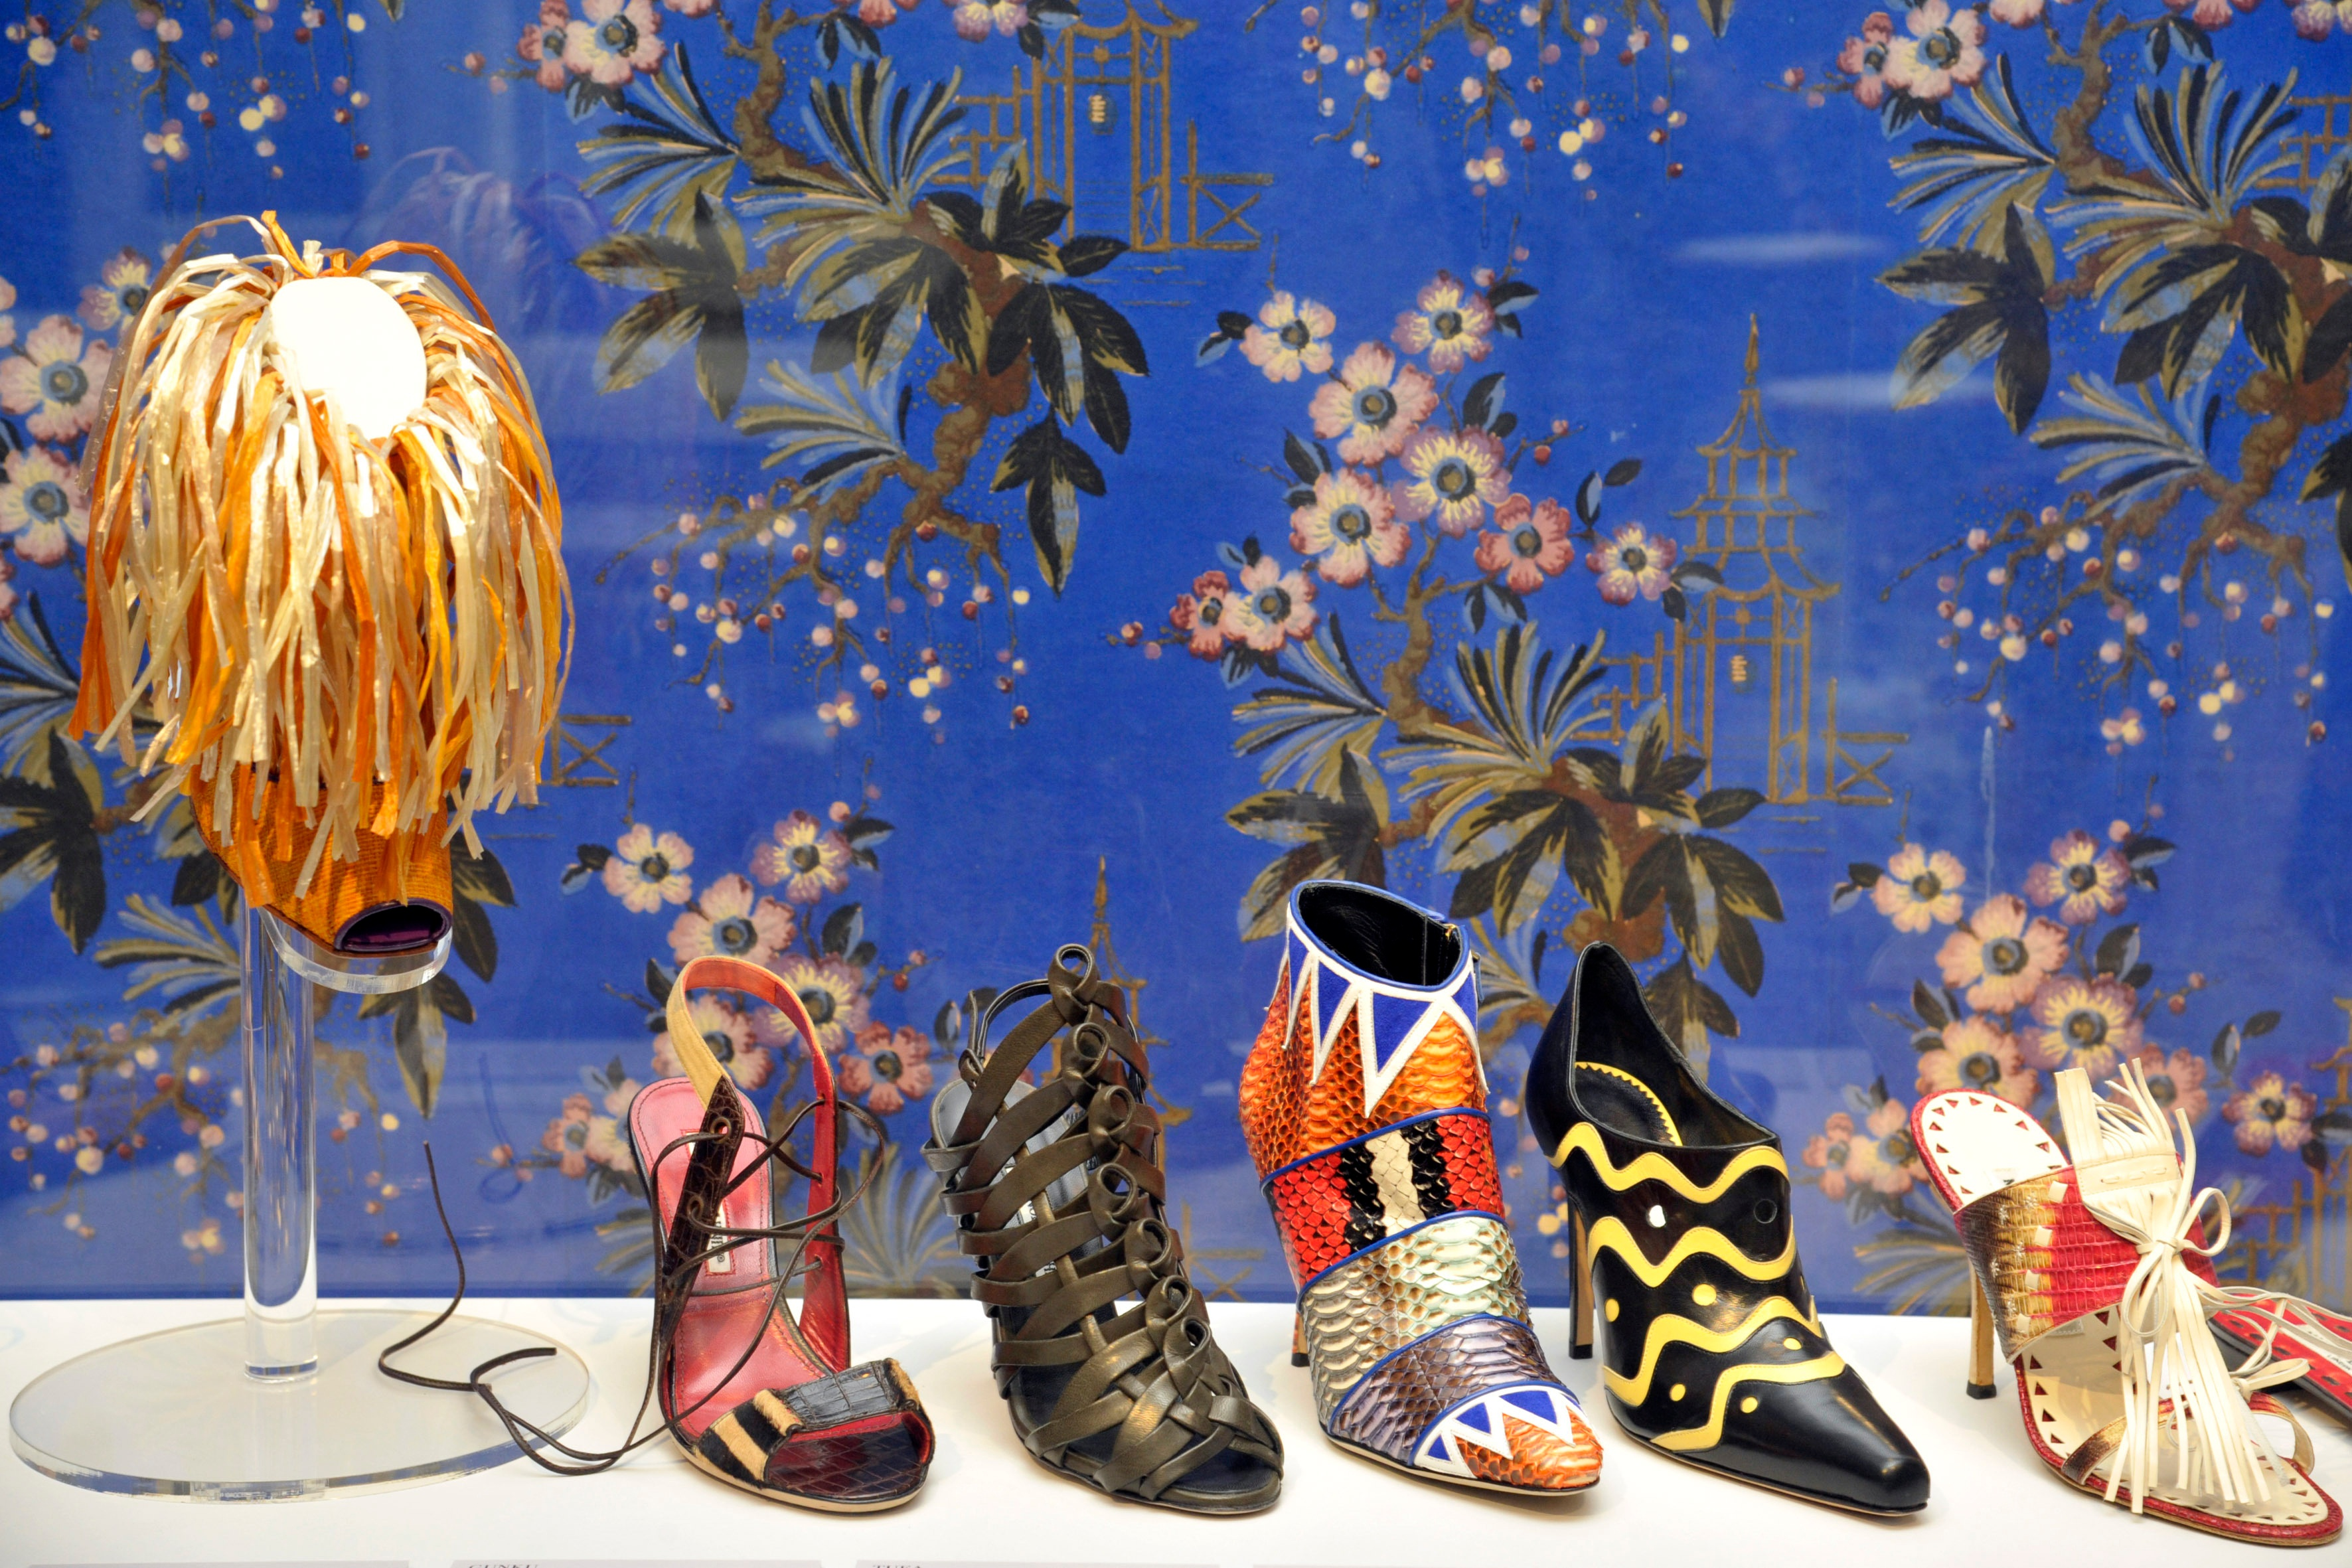 d46ecb735cd A Manolo Blahnik exhibit is coming to Toronto this spring | Listed